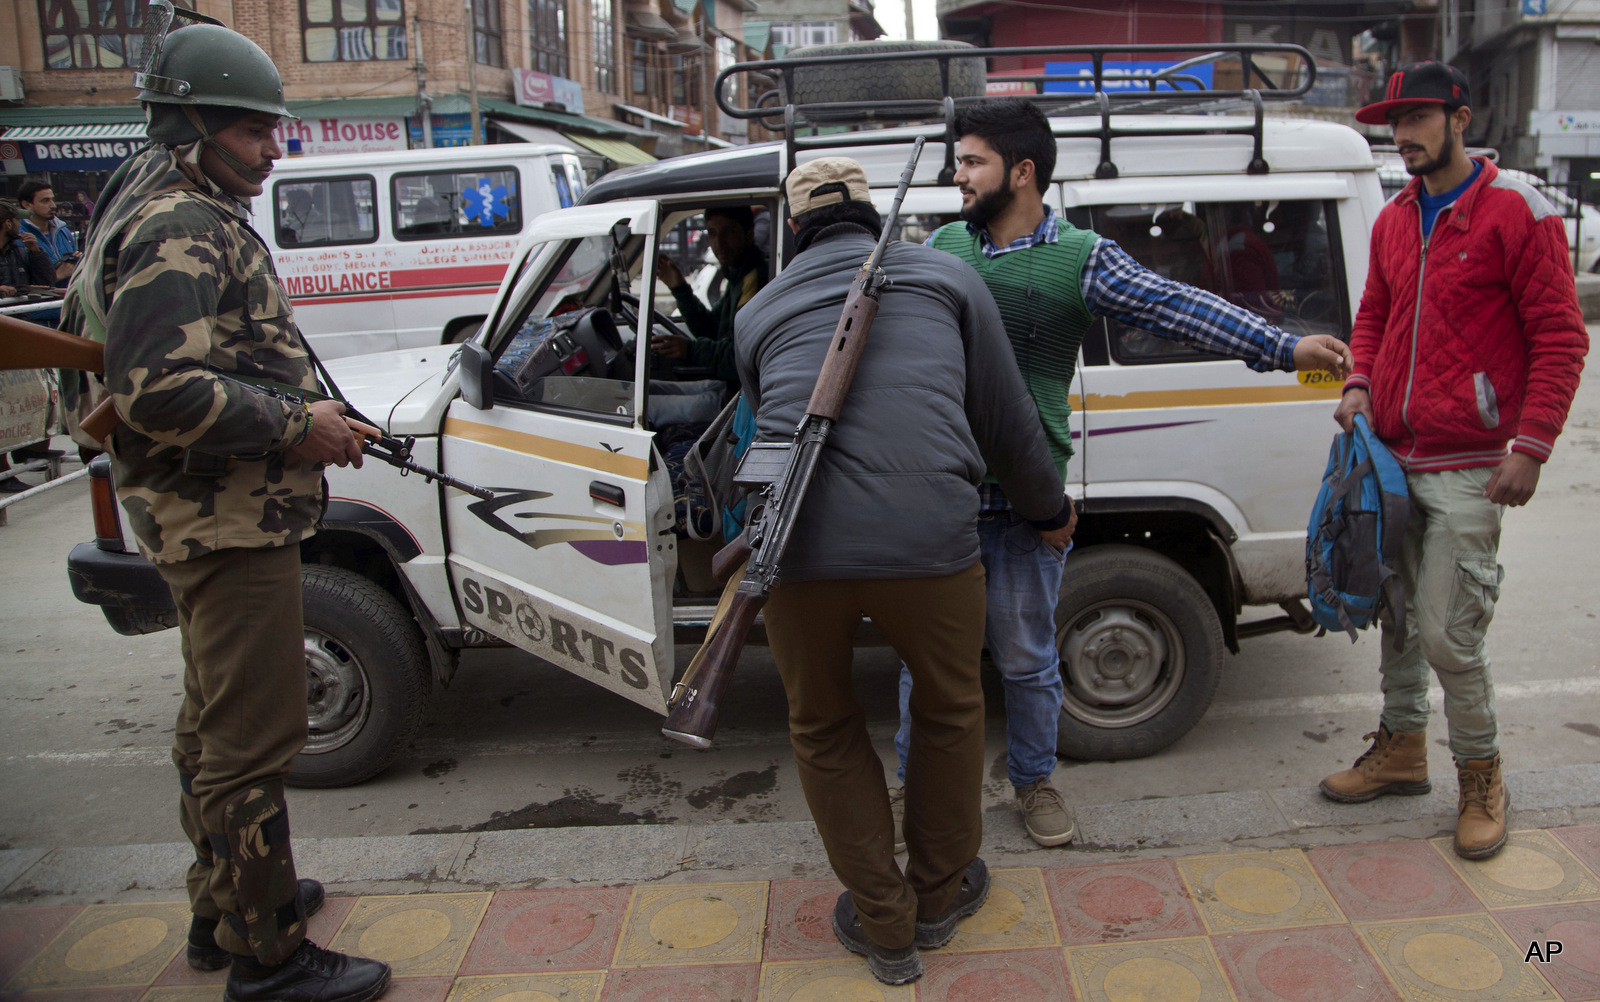 An Indian police man frisks a Kashmiri youth as an Indian paramilitary soldier, left, stands guard at a temporary checkpoint in Srinagar, Indian occupied Kashmir, Wednesday, Nov. 4, 2015.